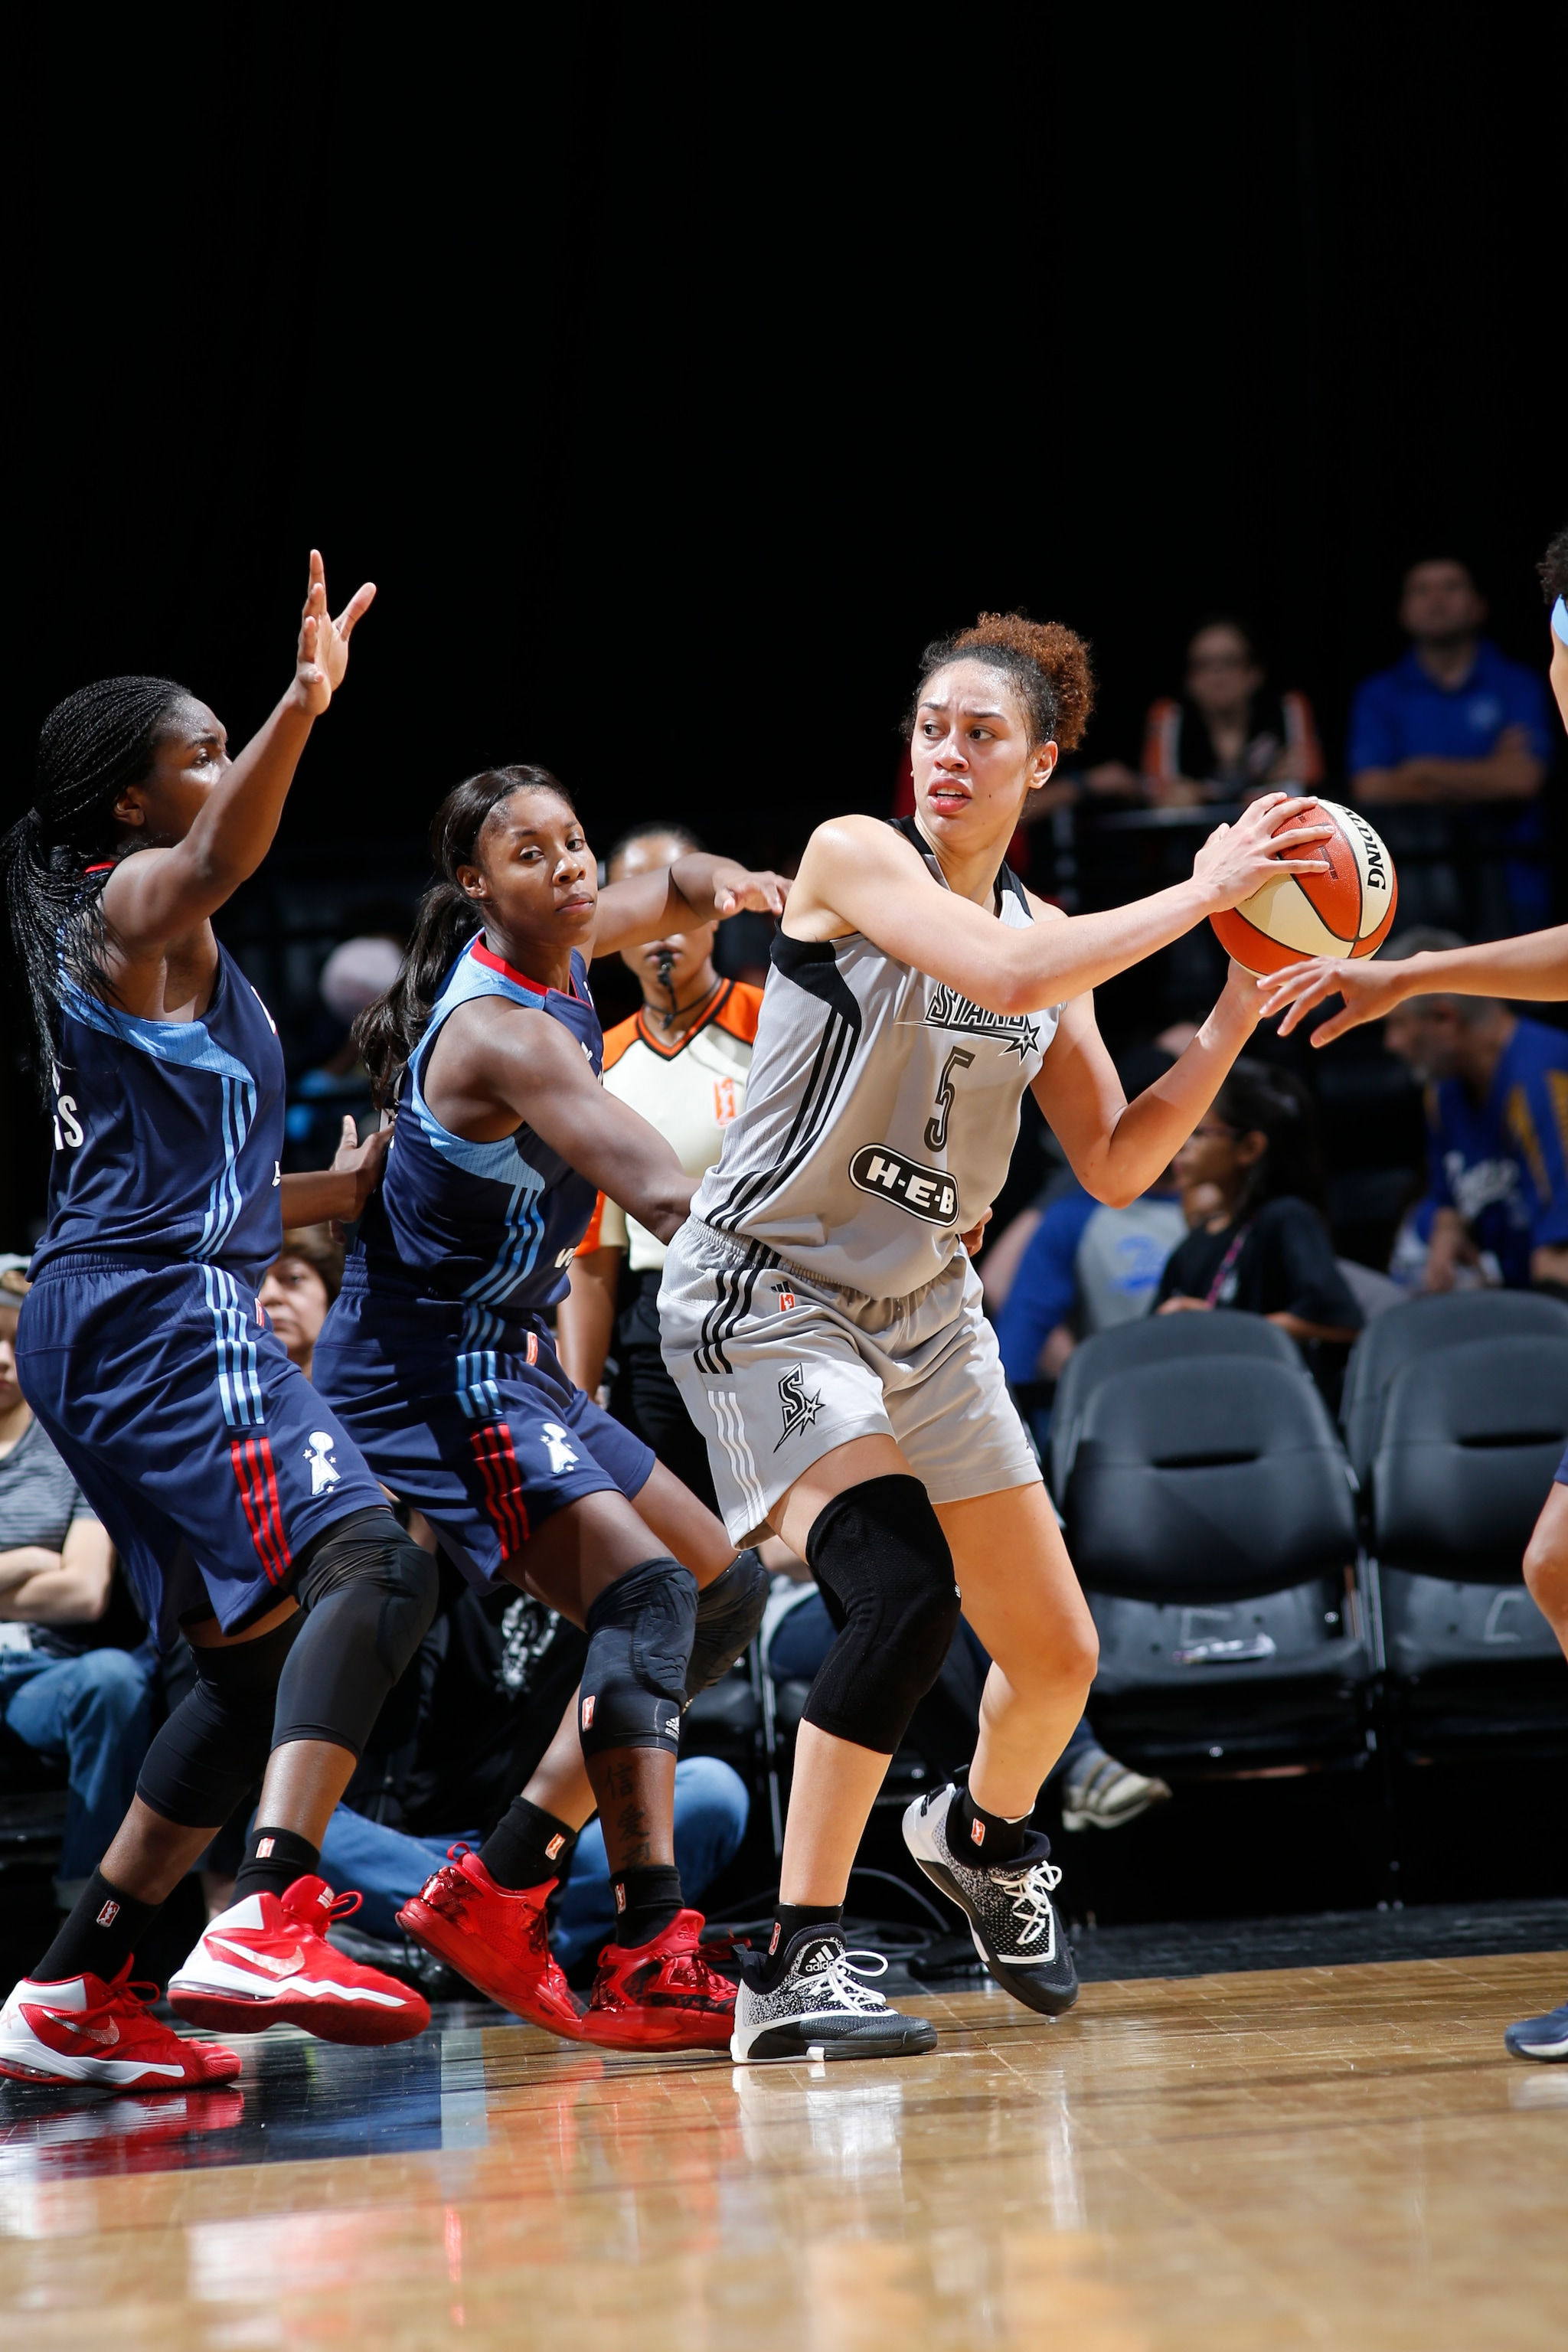 SAN ANTONIO, TX - MAY 14: Dearica Hamby #5 of the San Antonio Stars defends the ball against the Atlanta Dream during the game on May 14, 2016 at AT&T Center in San Antonio, Texas. NOTE TO USER: User expressly acknowledges and agrees that, by downloading and or using this Photograph, user is consenting to the terms and conditions of the Getty Images License Agreement. Mandatory Copyright Notice: Copyright 2016 NBAE (Photo by Chris Covatta/NBAE via Getty Images)